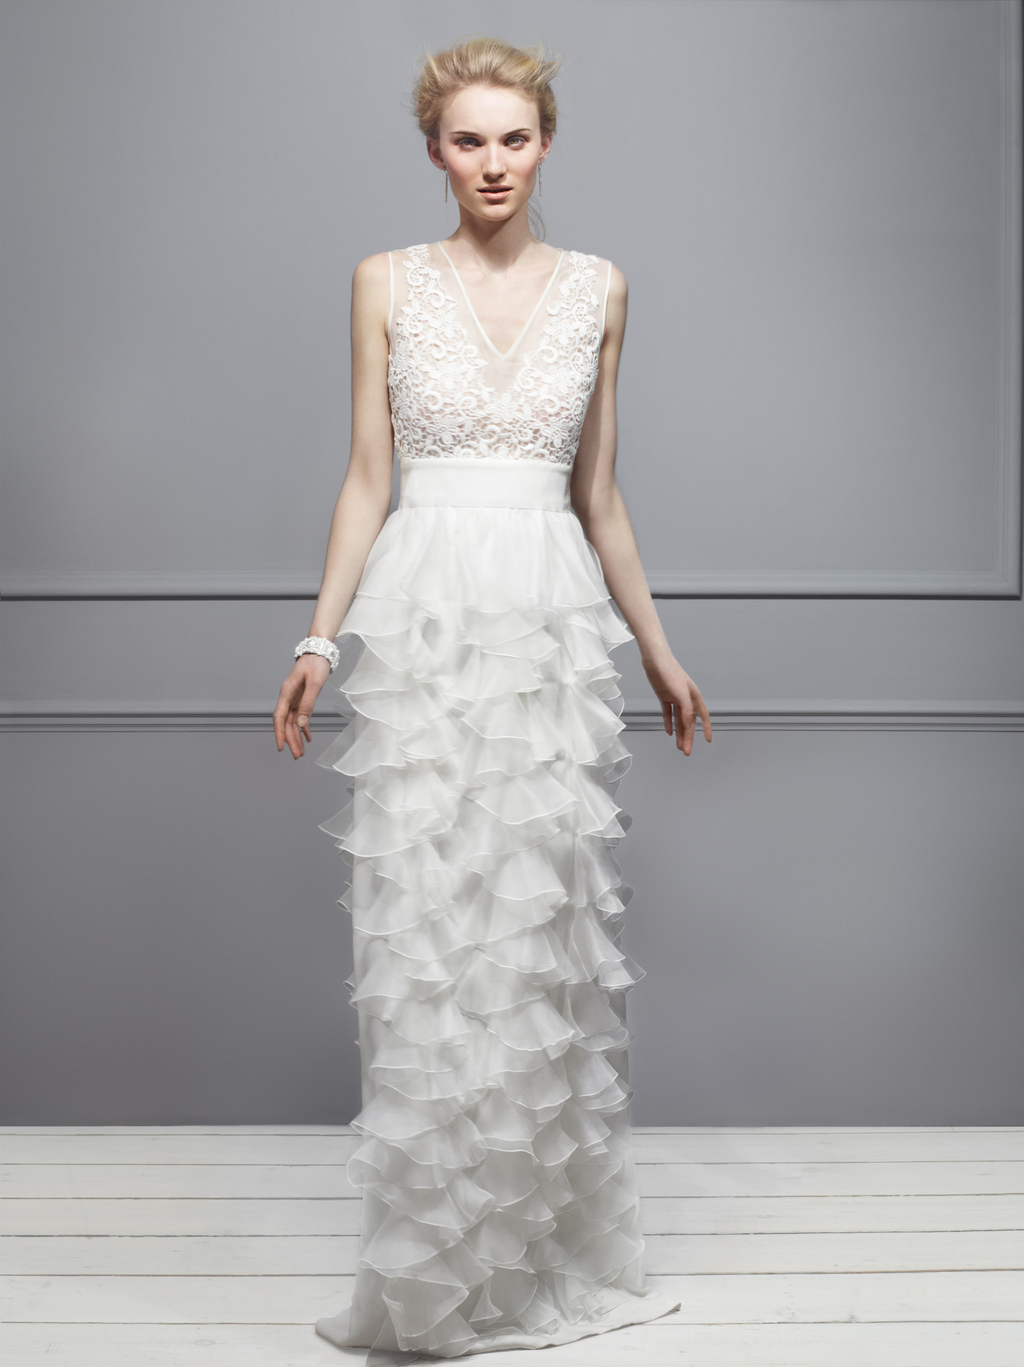 exclusive wedding dresses. giambattista valli wedding dress 2013 exclusive bridal designer collection from net a porter dresses